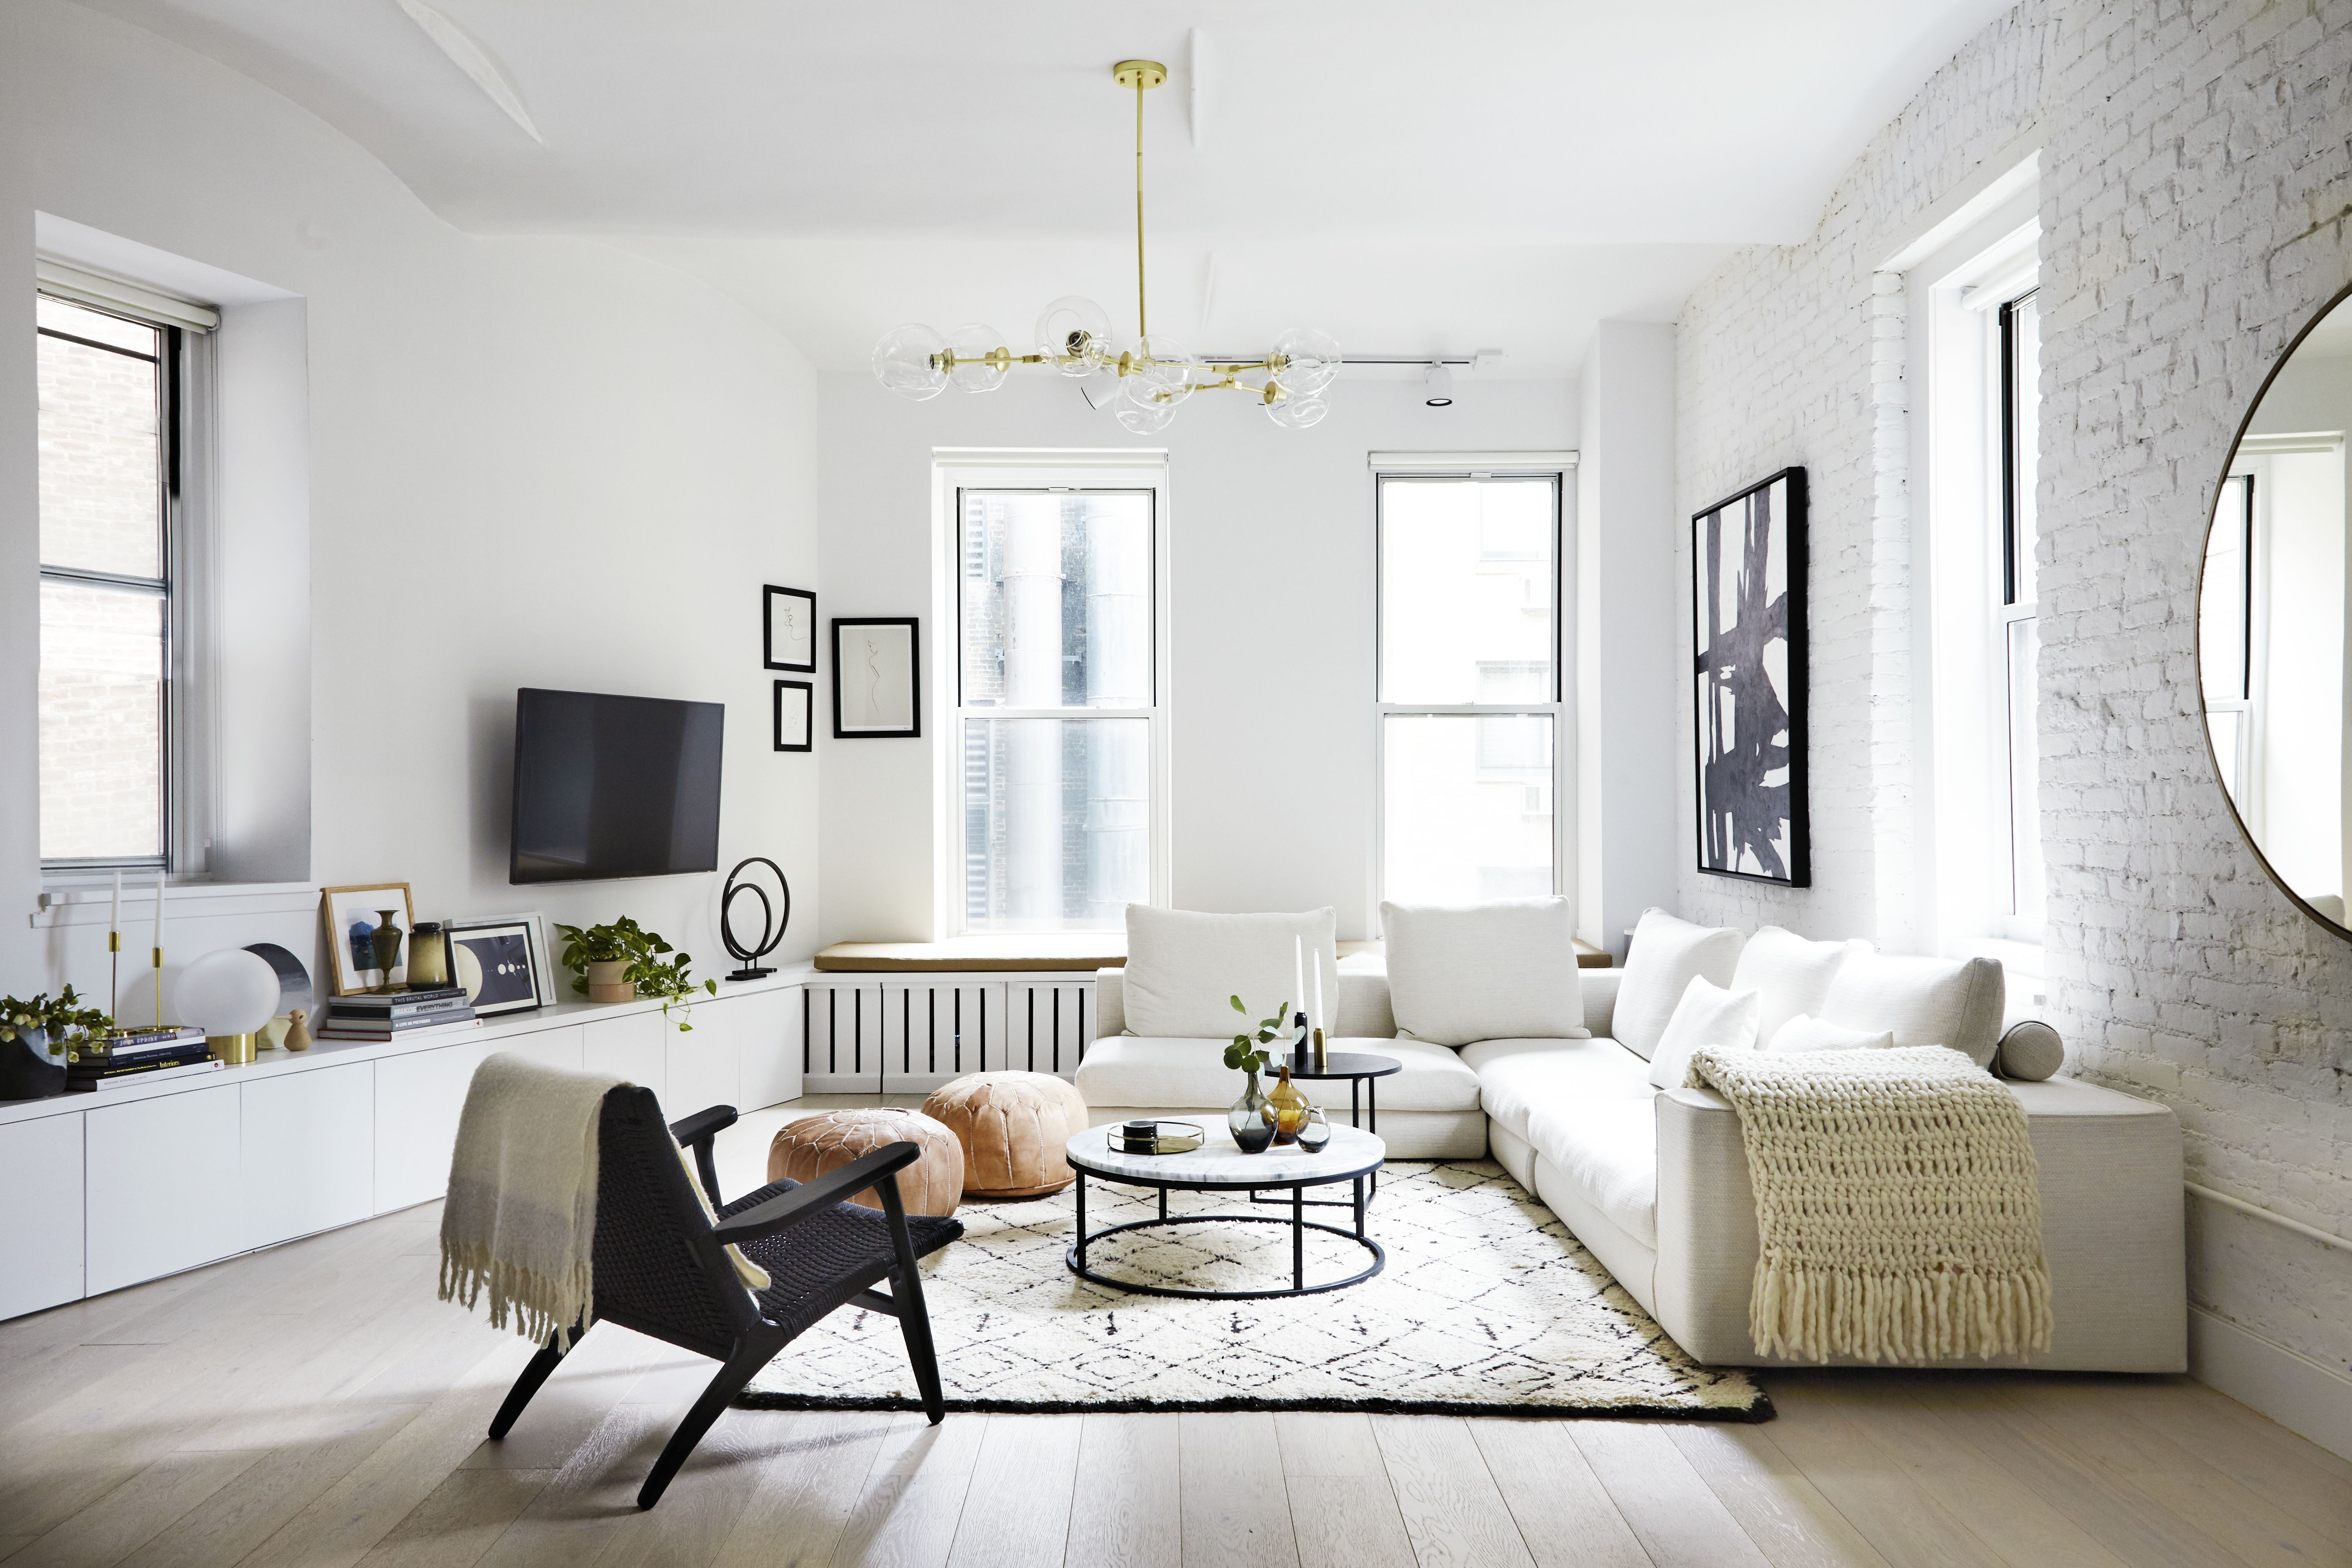 Photo 1 Of 19 In Tour An Insanely Stylish Nyc Loft With Major Living Room Scandinavian Minimalist Living Room Modern Minimalist Living Room #nyc #apartment #living #room #ideas